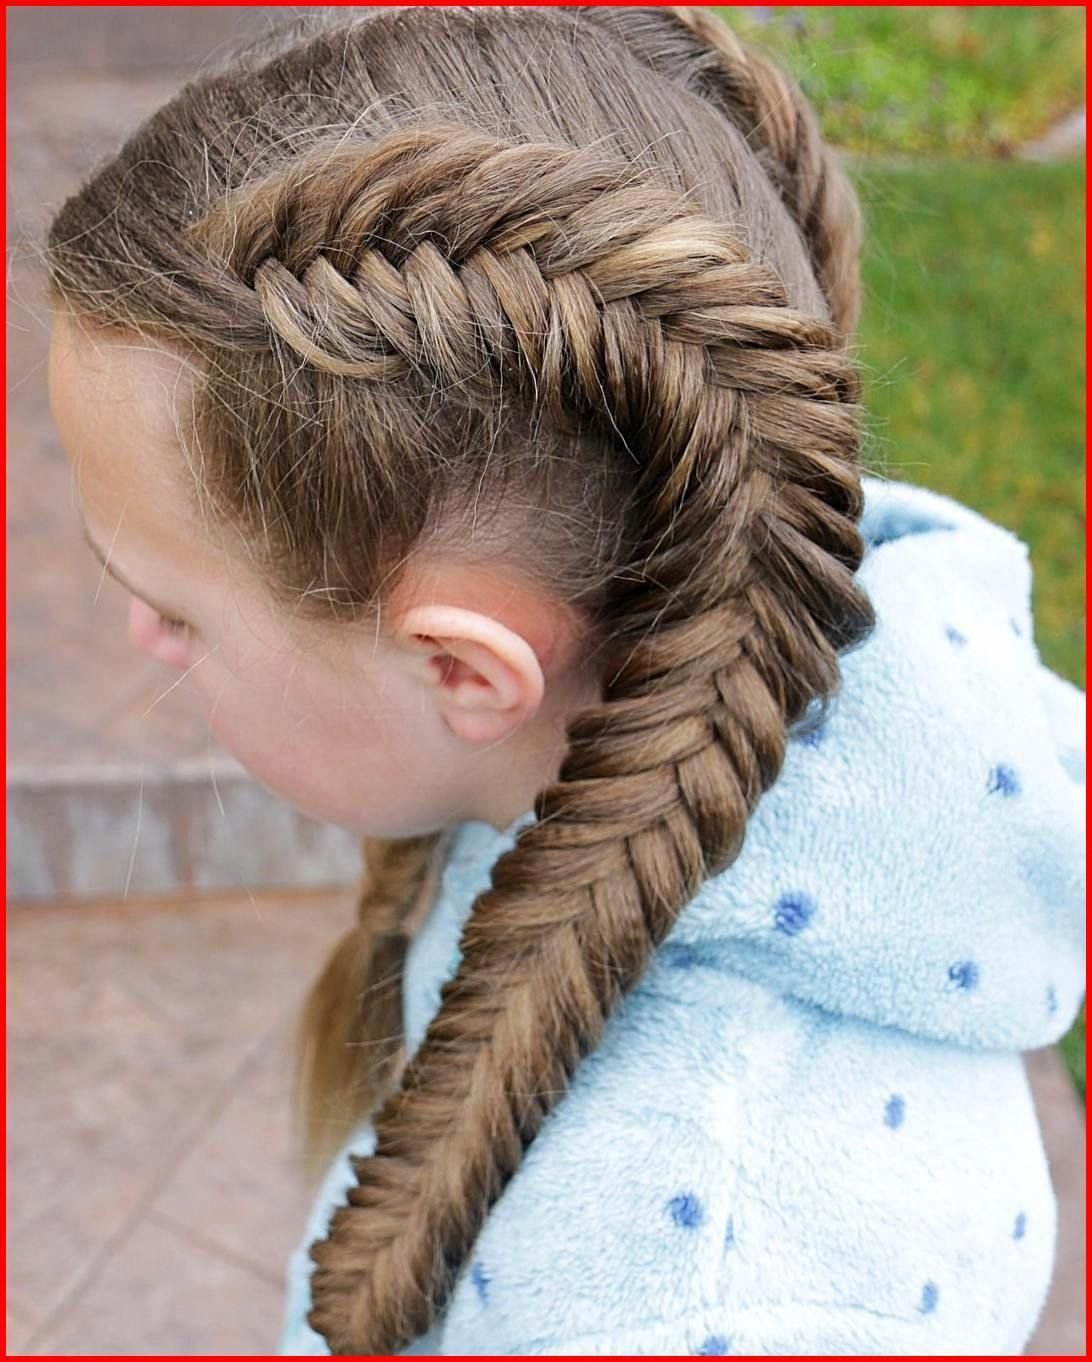 braid hairstyles for prom Updo #boxbraids | Fish tail ...